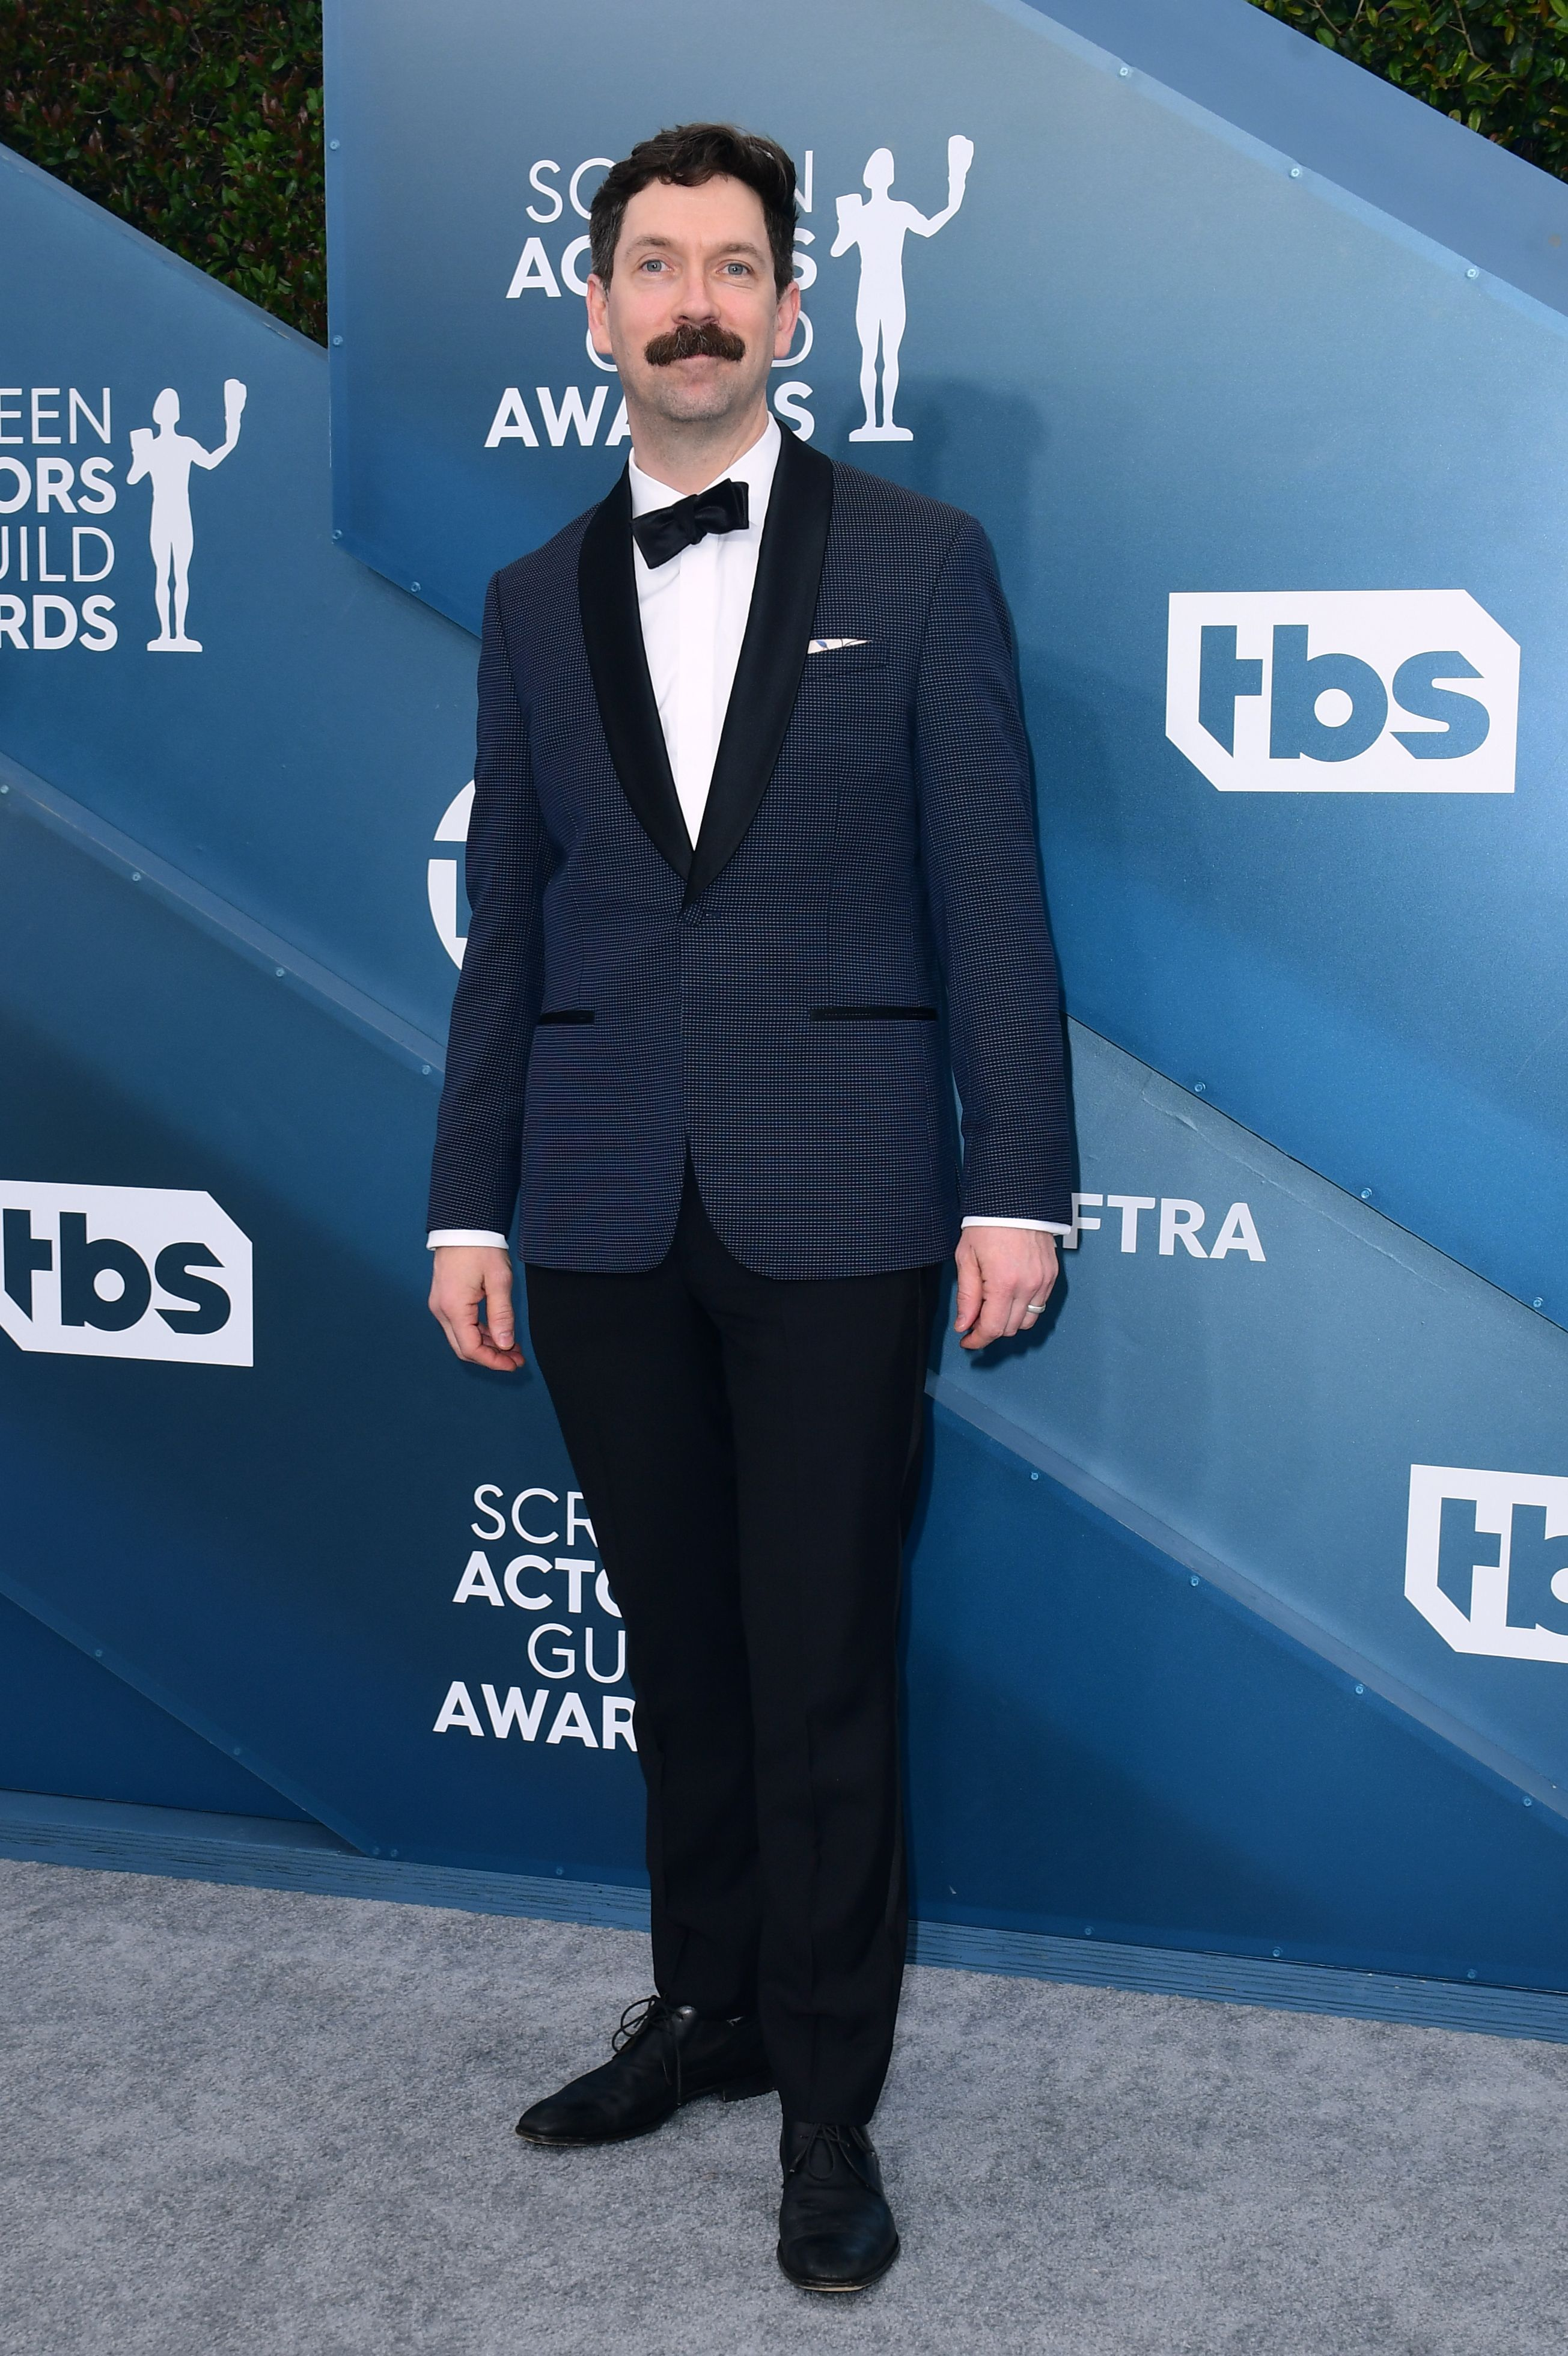 Andy Carey arrives for the 26th Annual Screen Actors Guild Awards at the Shrine Auditorium in Los Angeles on January 19, 2020. (Photo by FREDERIC J. BROWN / AFP) (Photo by FREDERIC J. BROWN/AFP via Getty Images)